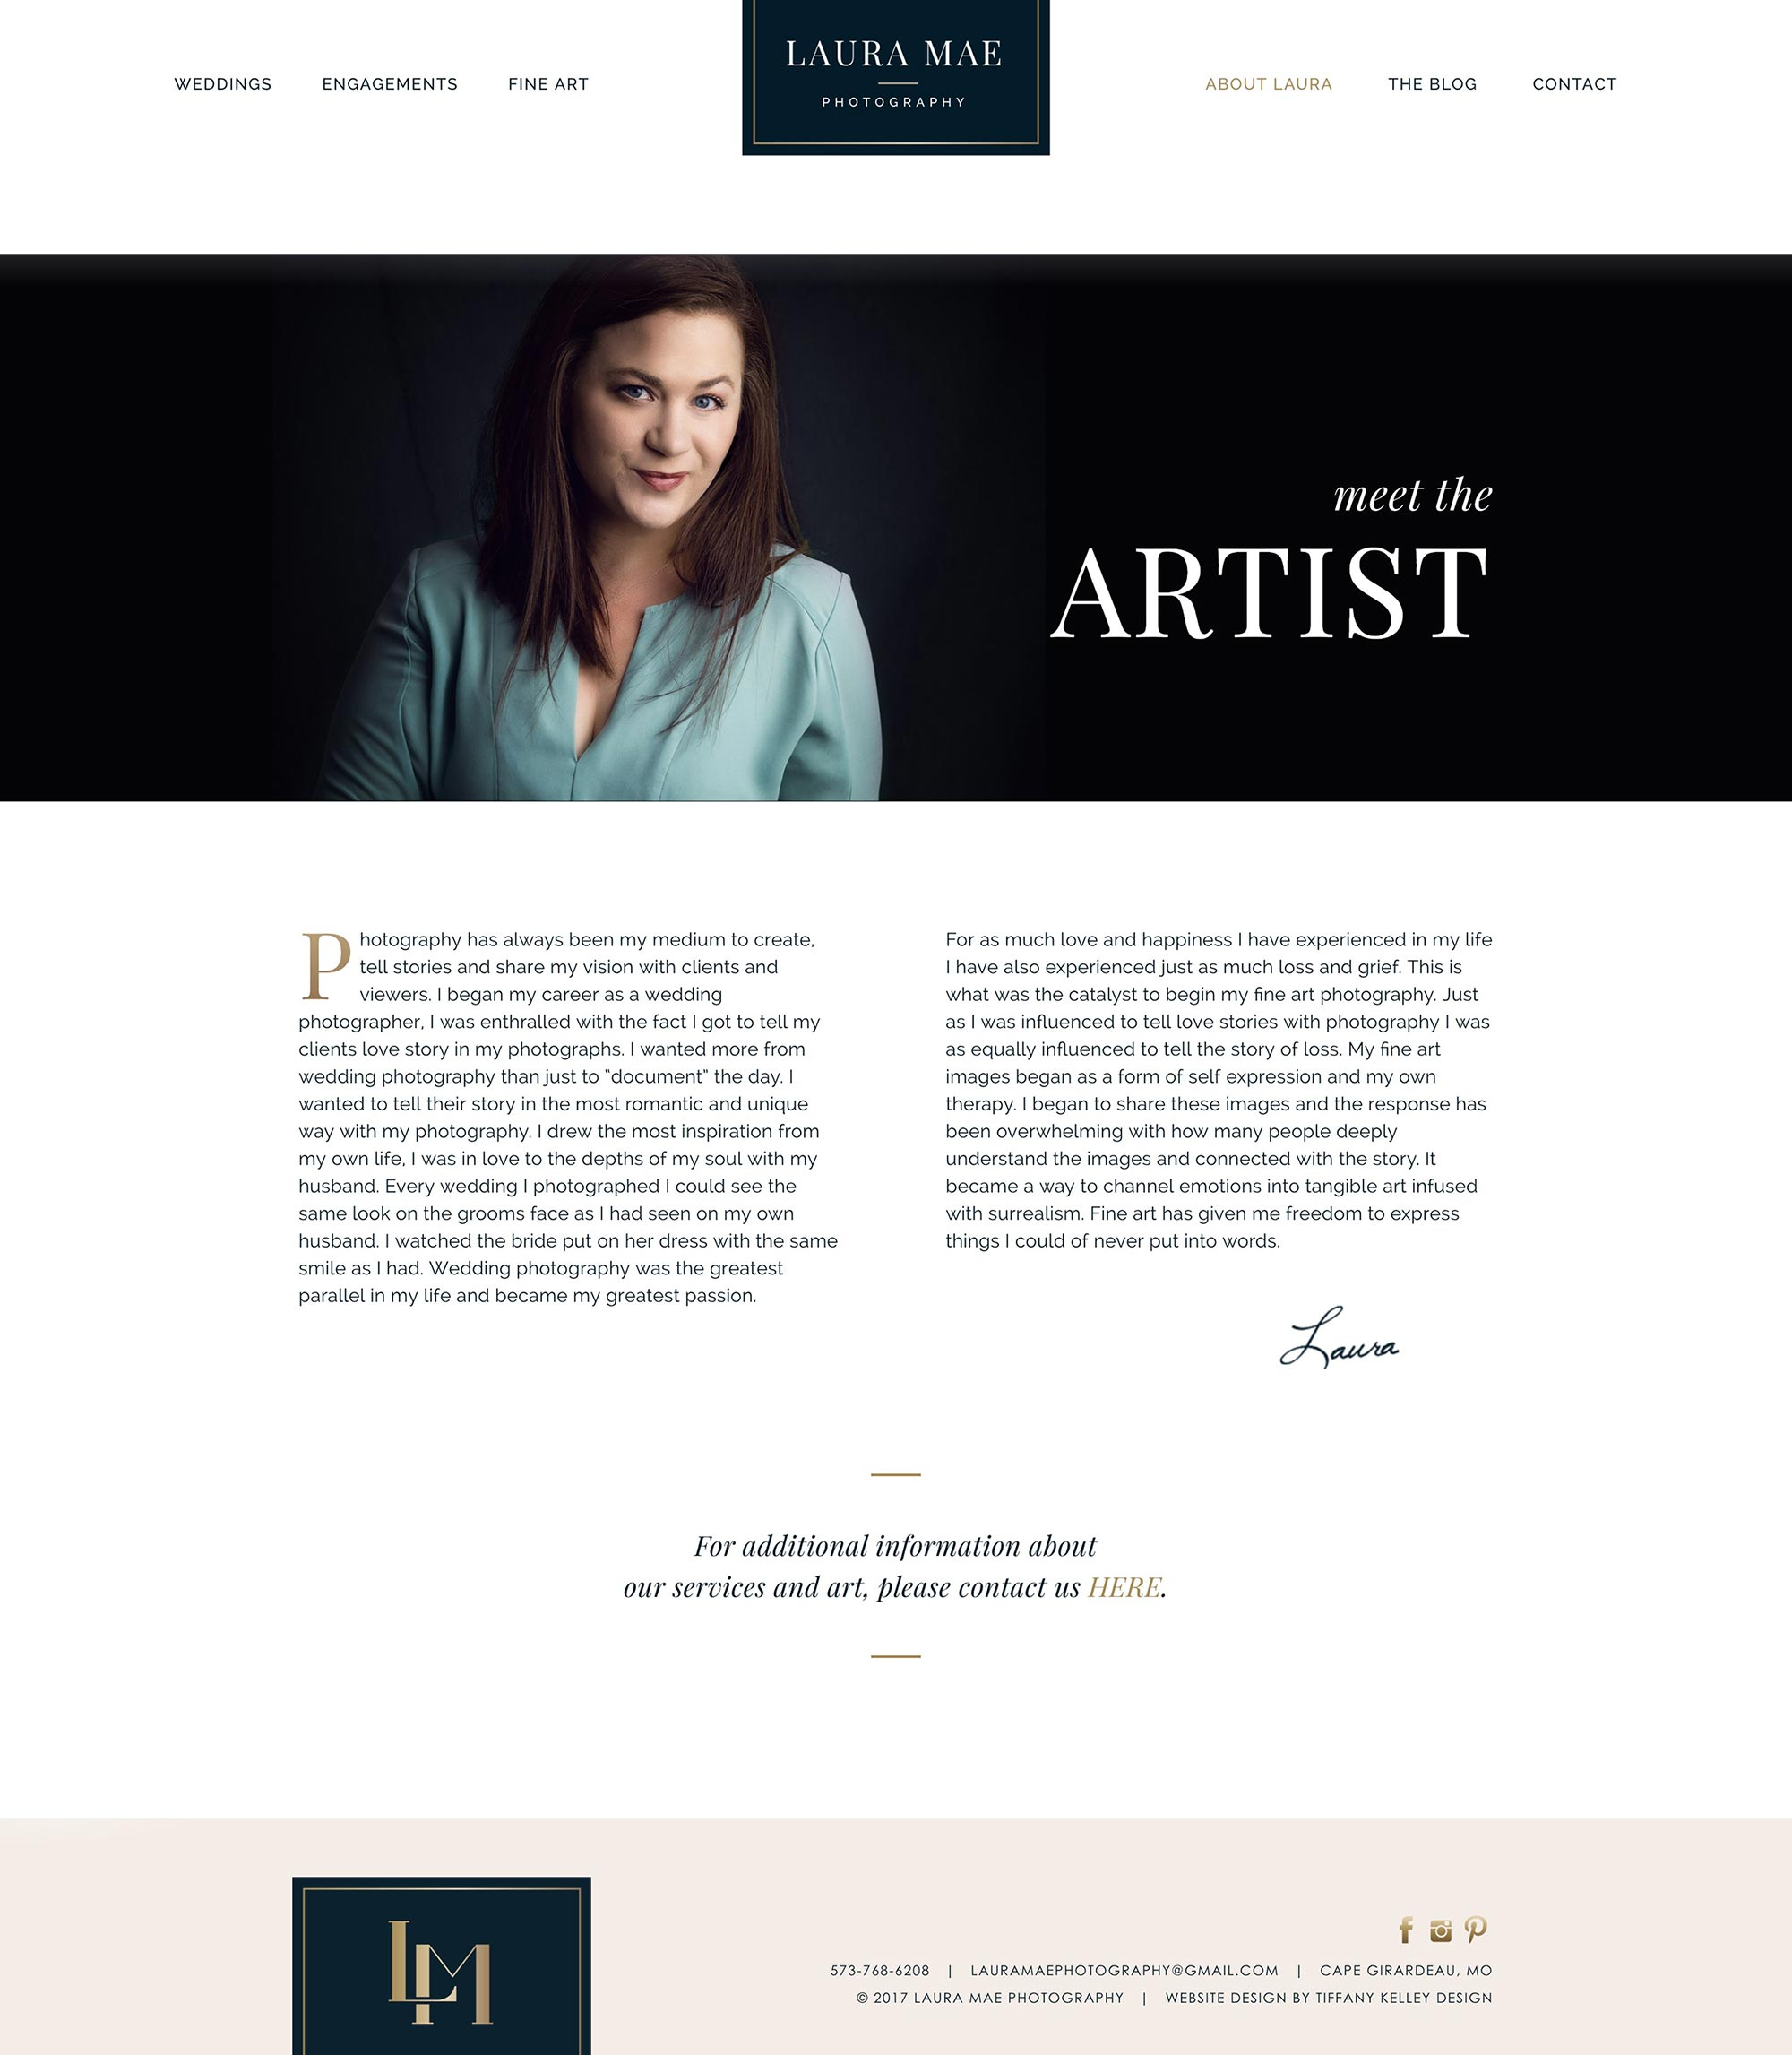 about the artist web design laura mae photography